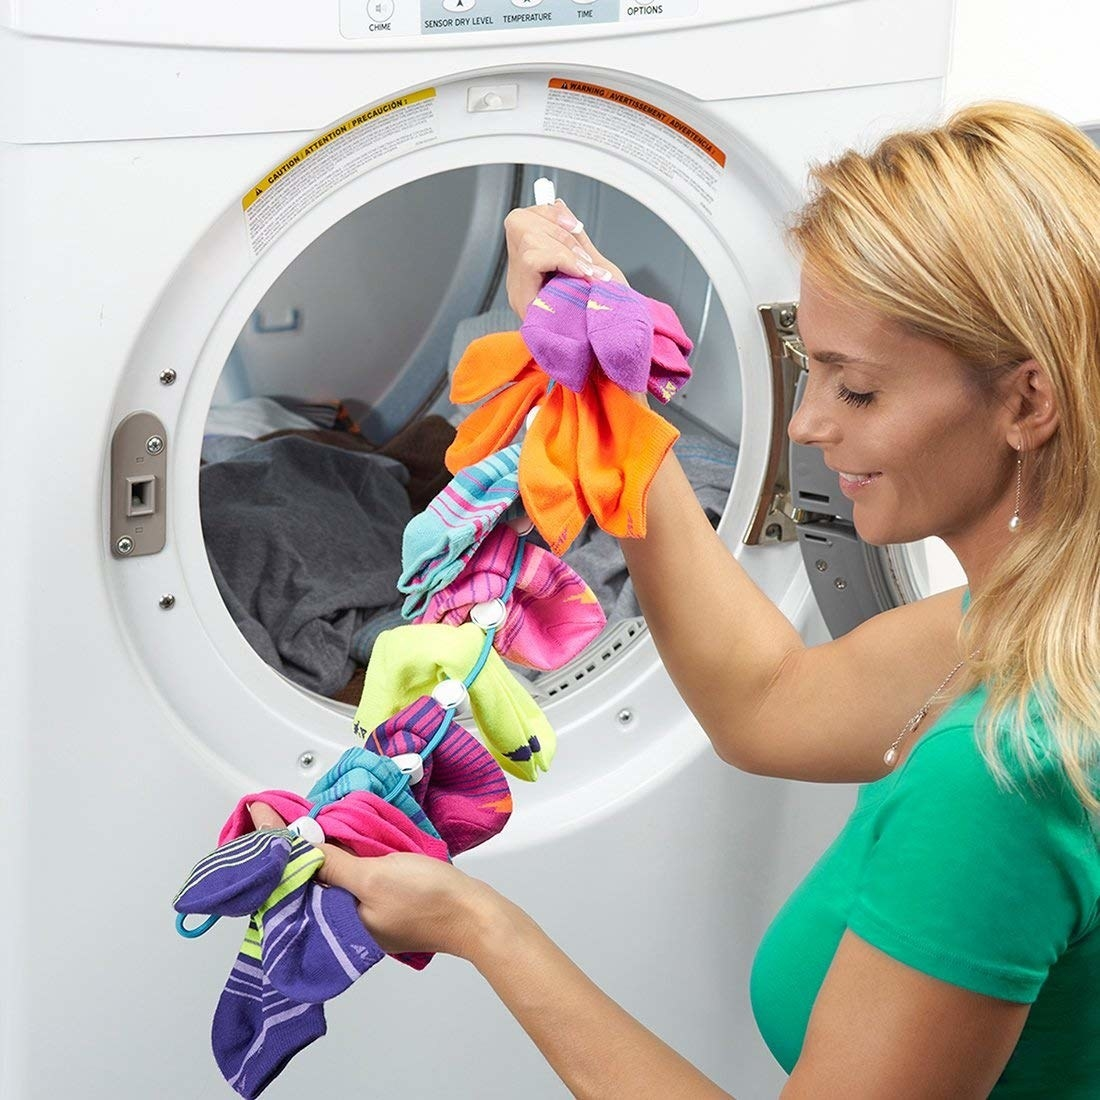 model holding up a string of clipped socks that are going into the washing machine